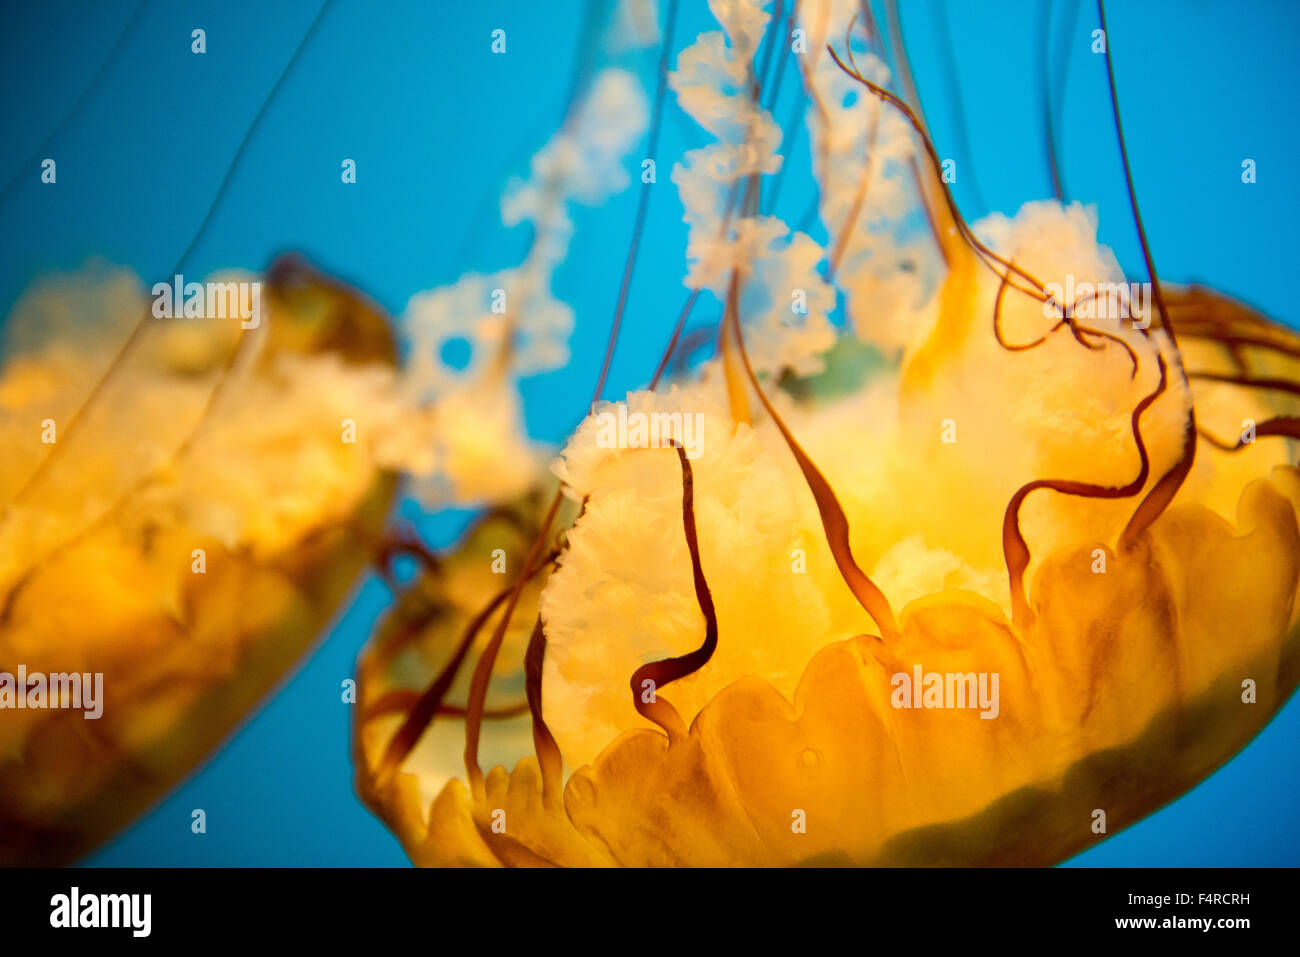 Sea nettle Jellyfish on display in a tank at the National Aquarium in Baltimore, Maryland USA Stock Photo